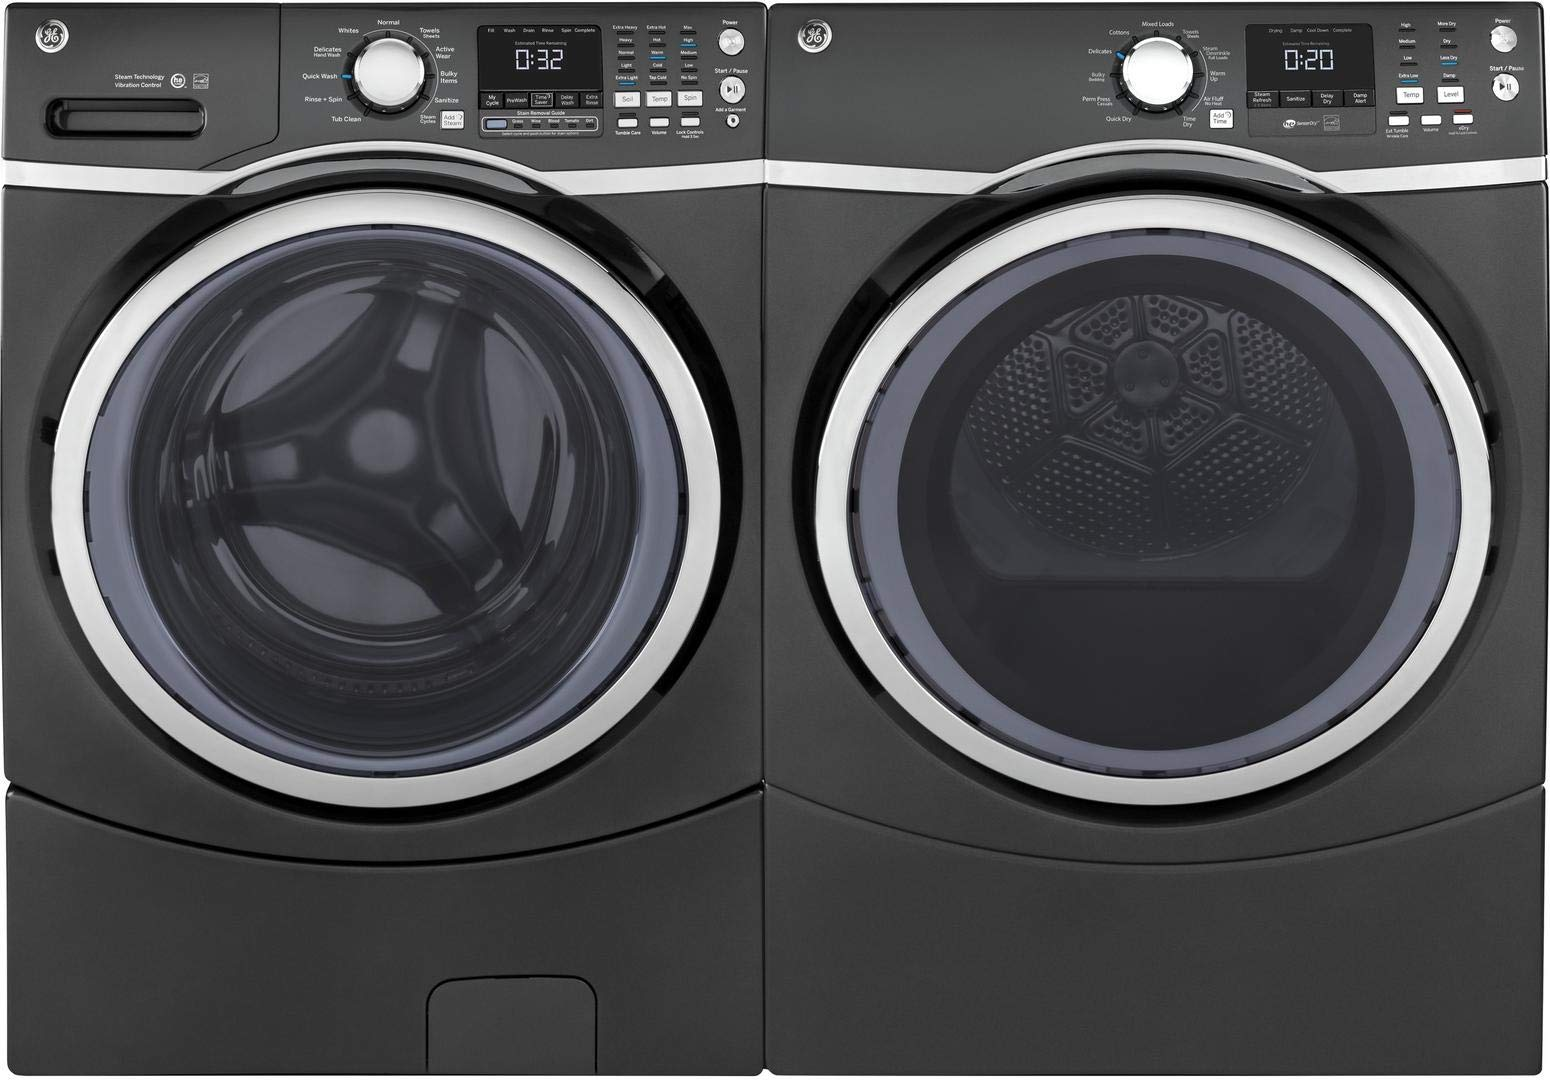 "GE Front Load Steam GFW450SPMDG 27"""" Washer with GFD45GSPMDG 27"""" Gas Dryer Laundry Pair in Gray"